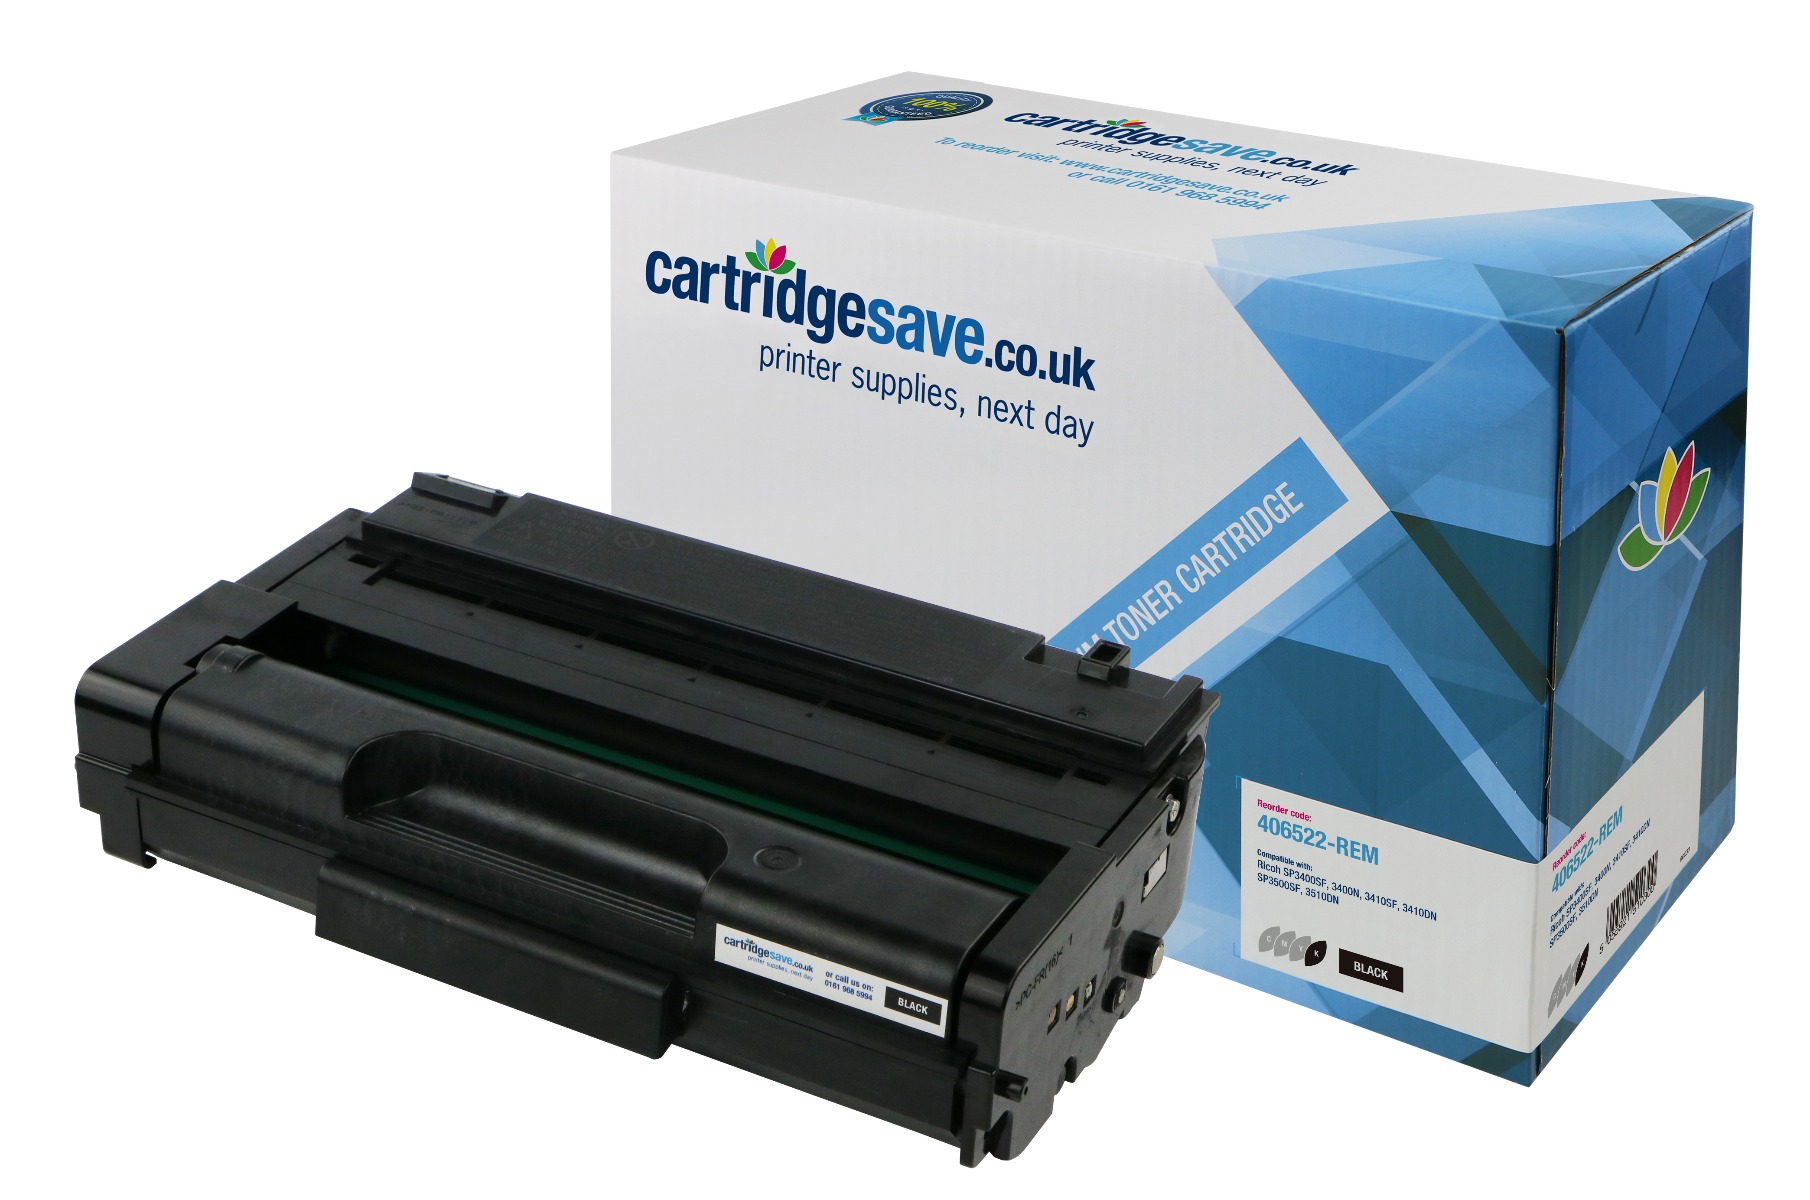 Compatible High Capacity Black Ricoh 406522 Toner Cartridge (Replaces Ricoh 406522 Laser Printer Cartridge)